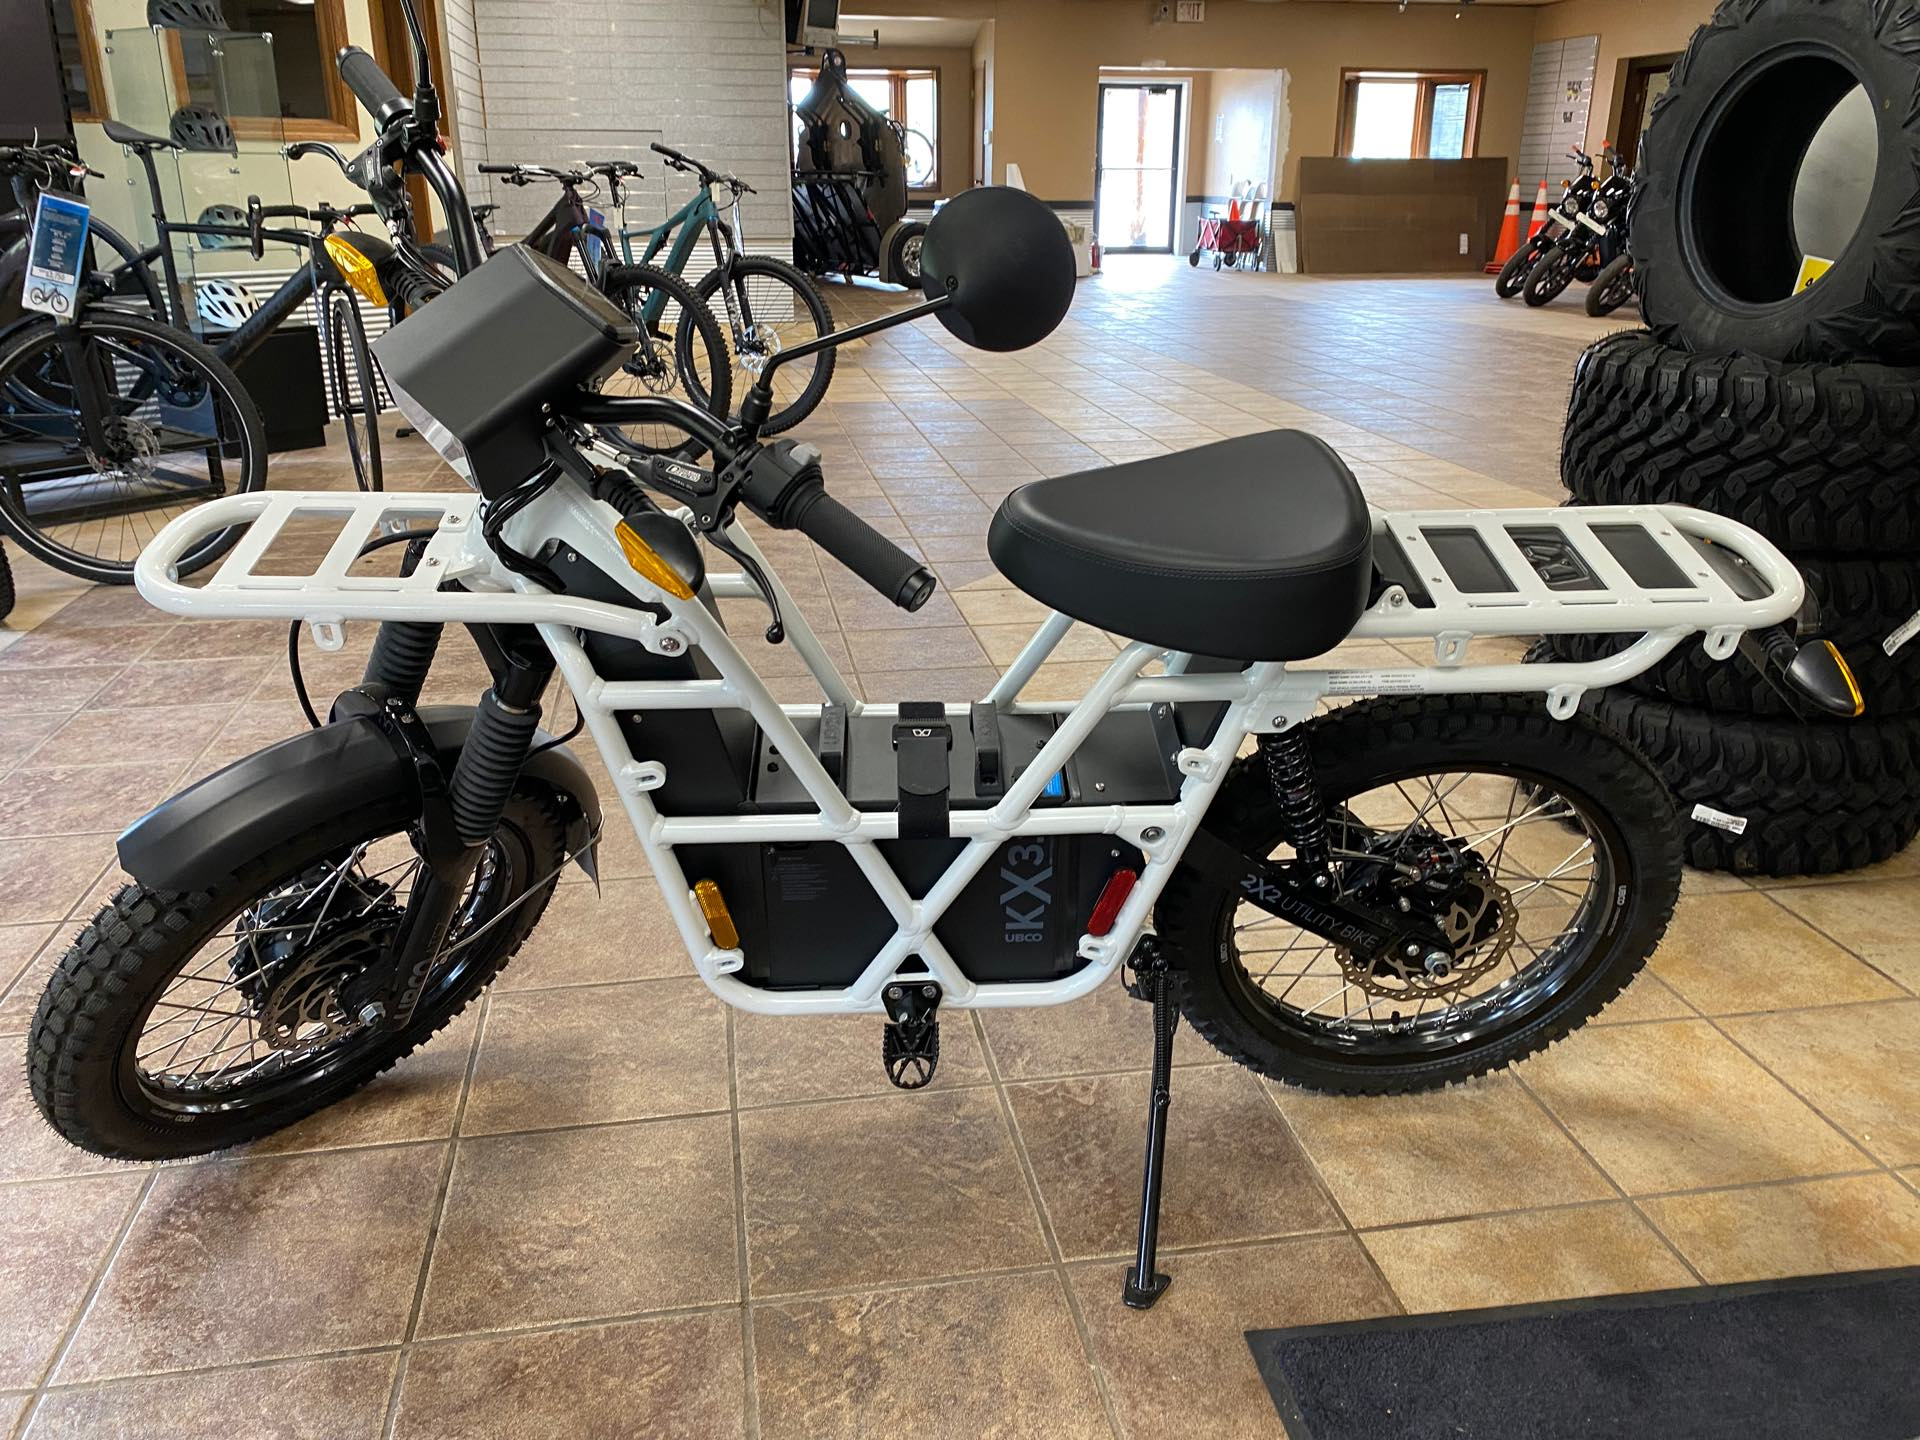 2021 Ubco 2X2 Adventure KX21 at Gold Star Outdoors